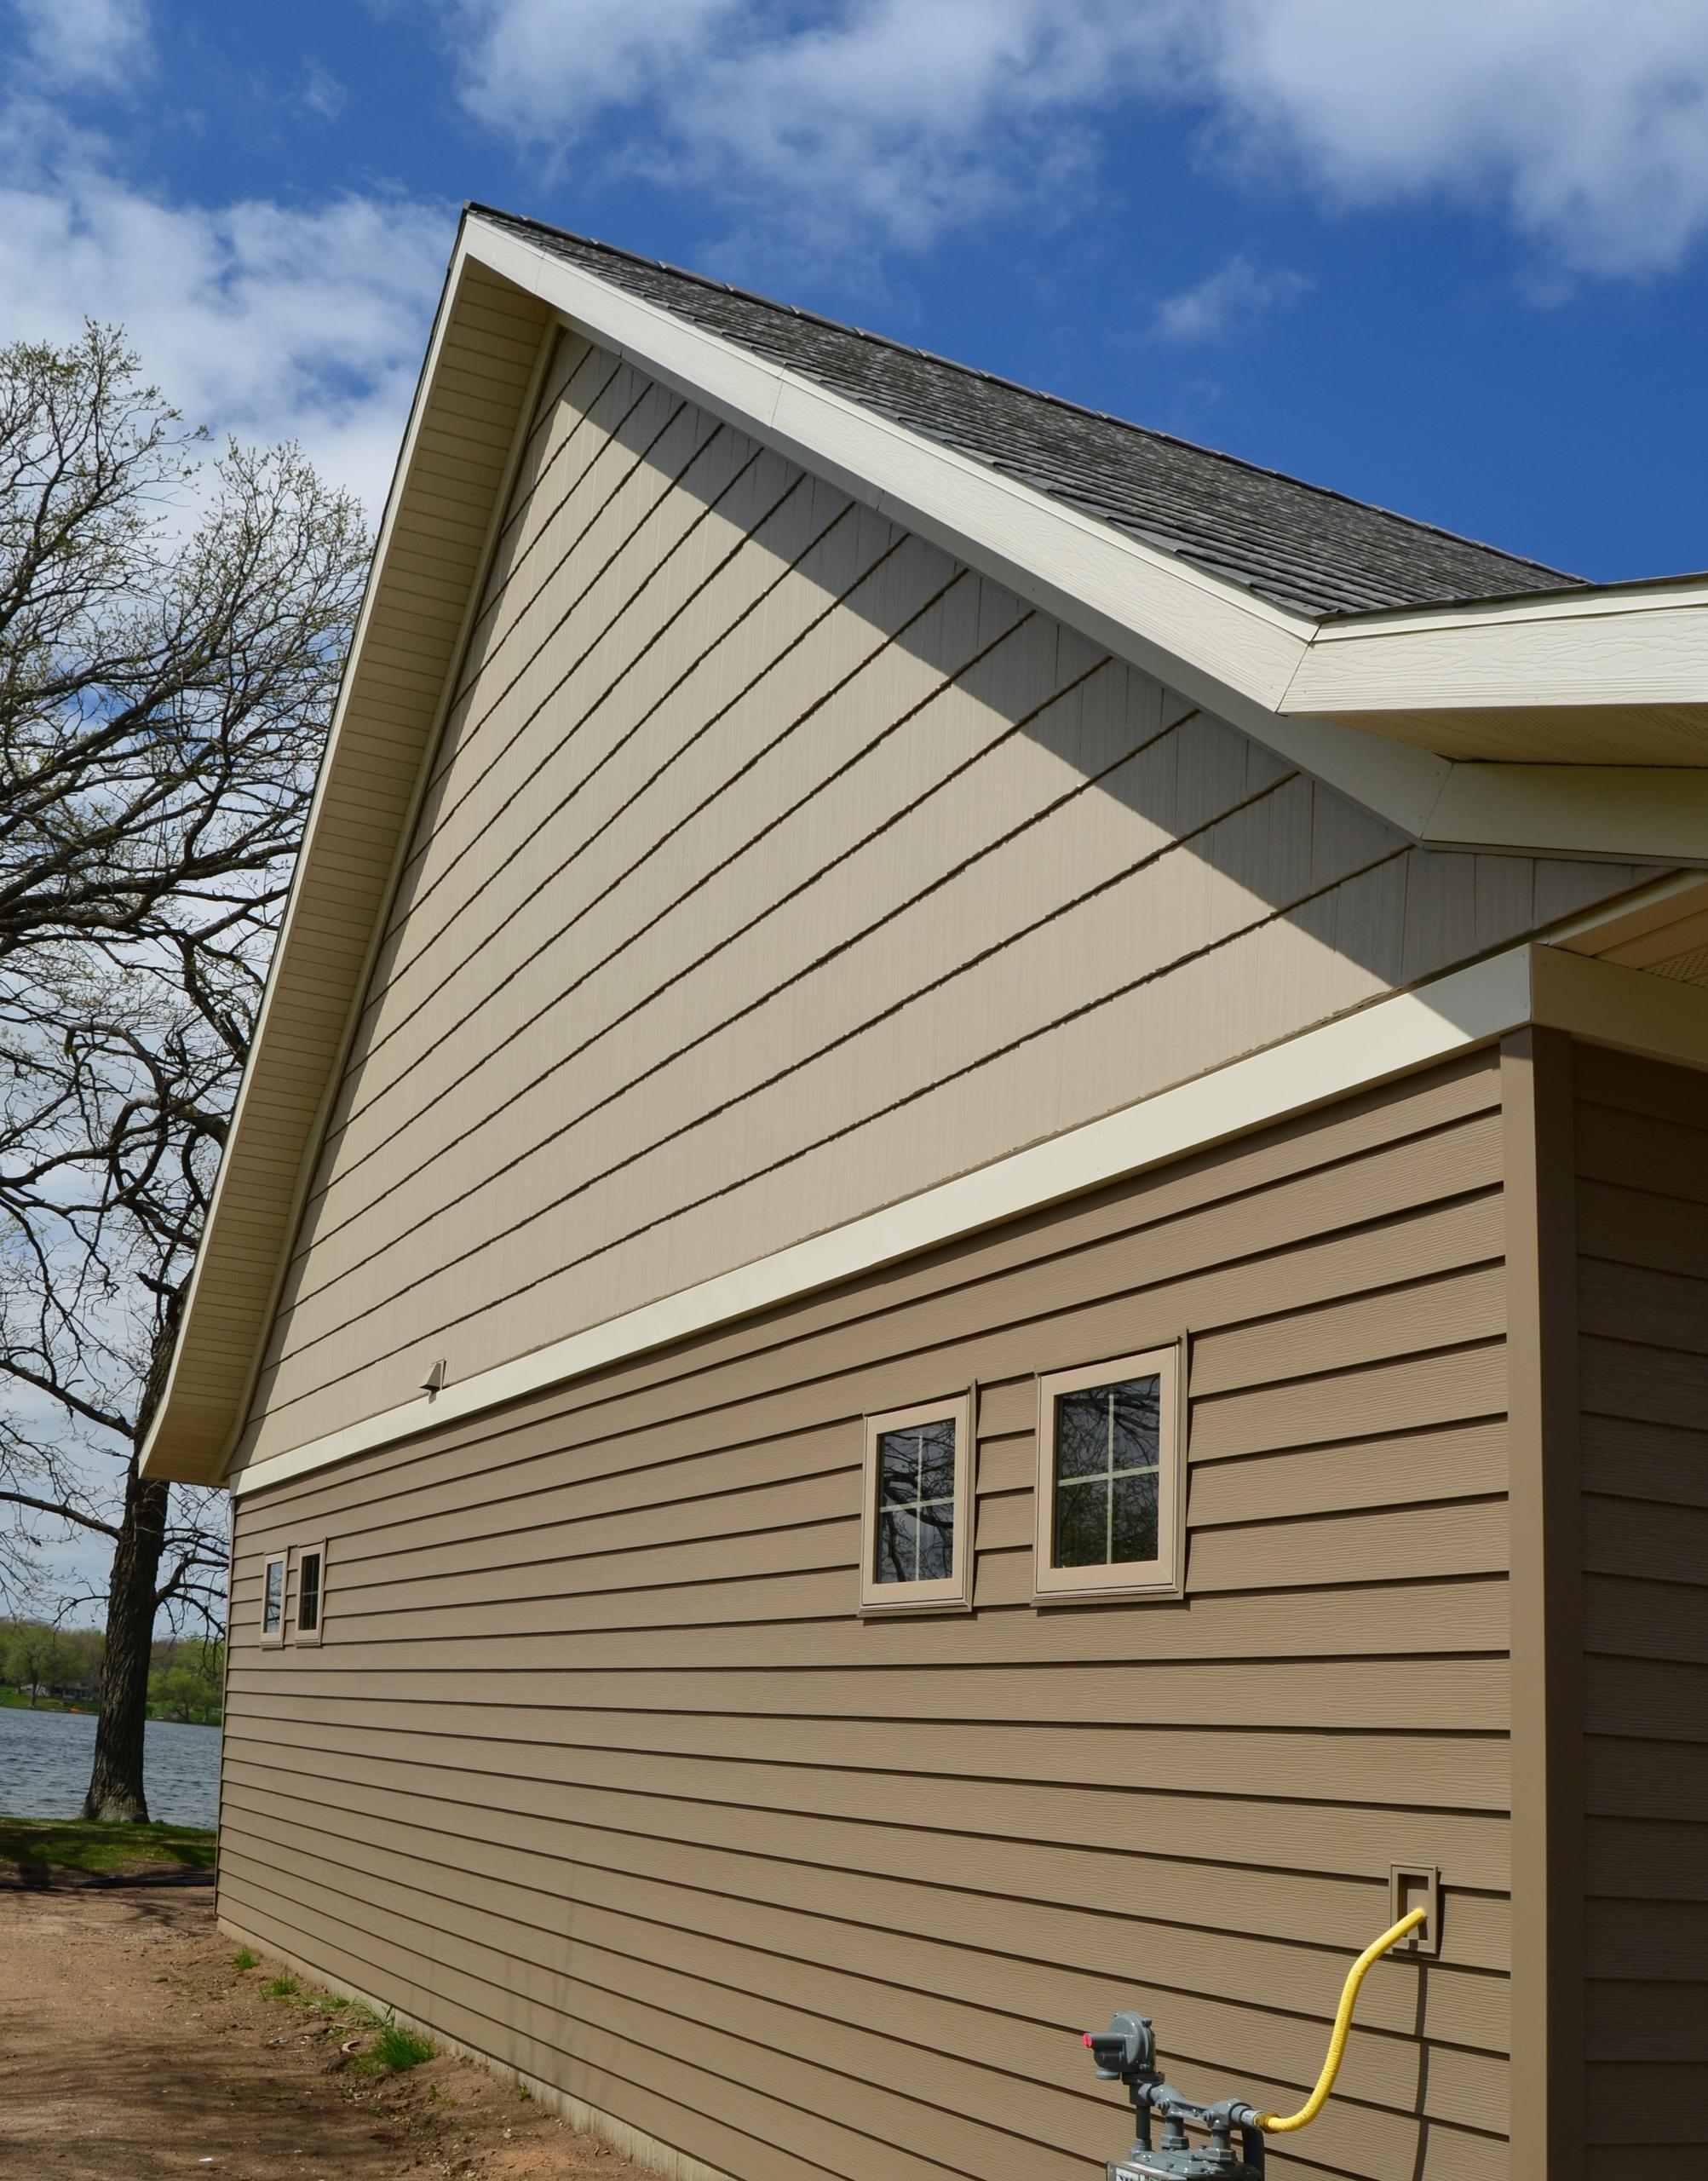 The complete color-coordinated look of EDCO steel products on one home gives the home everlasting beauty